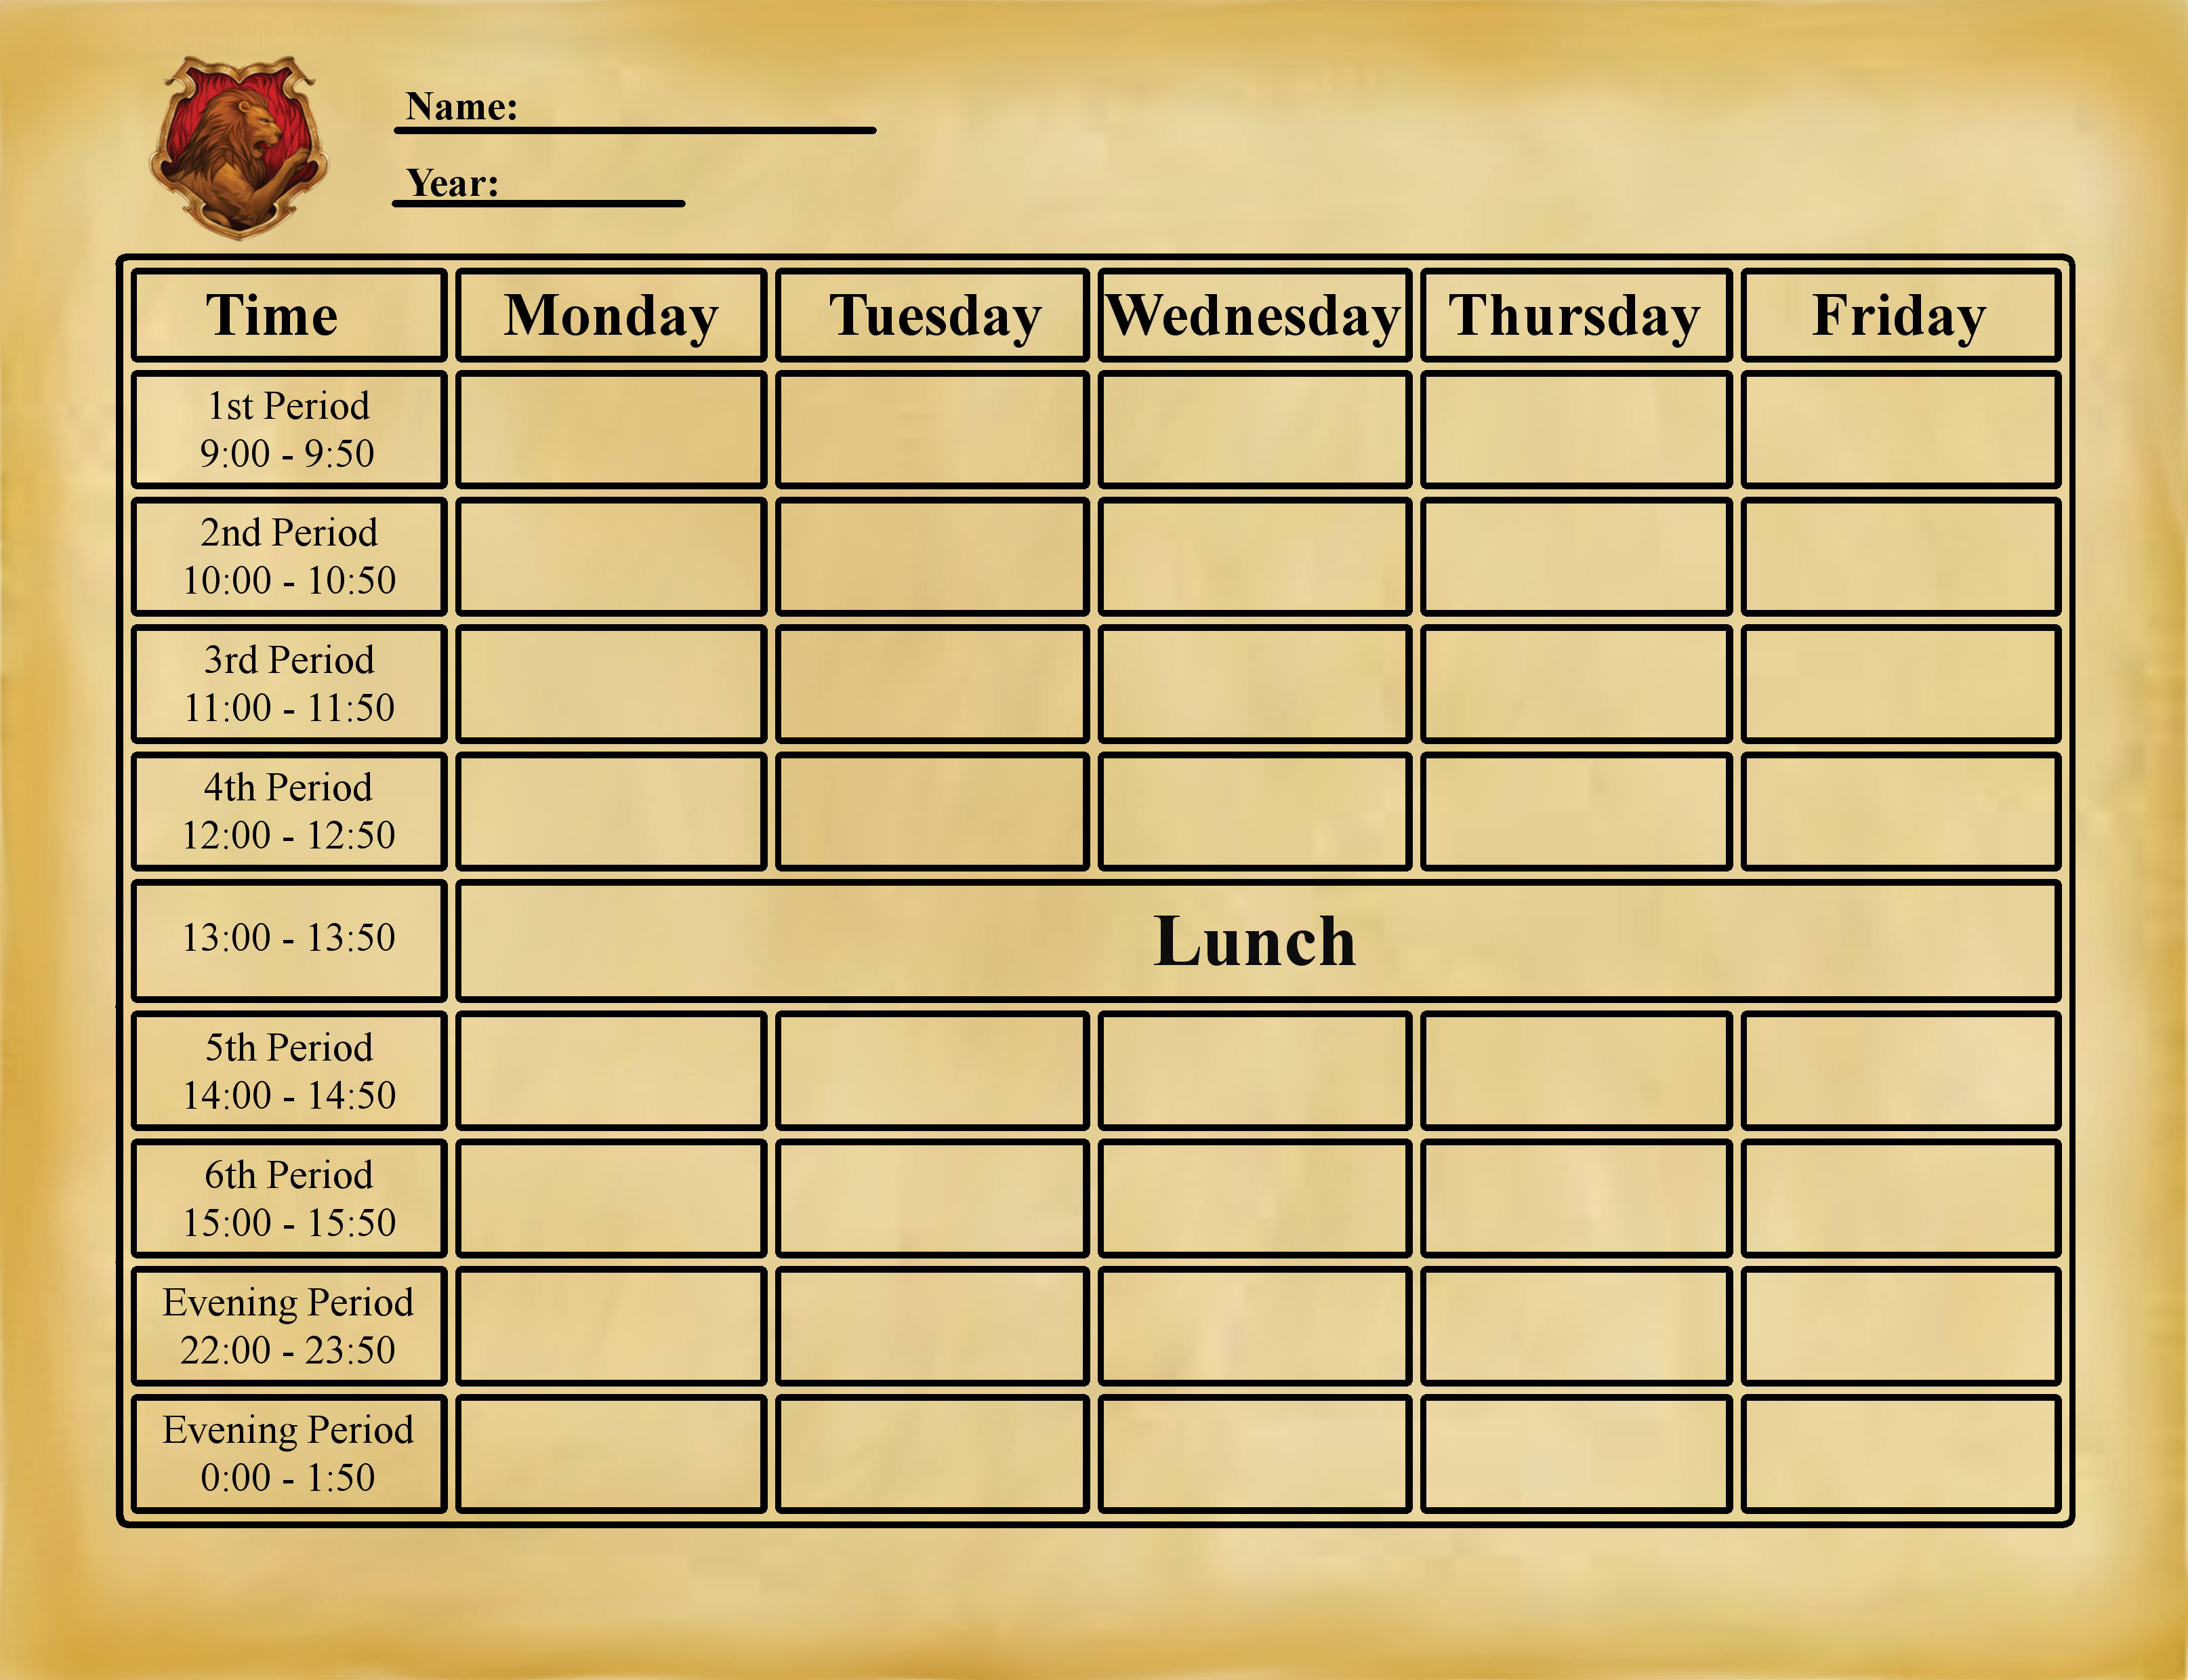 Hl Blank Timetable By Targebunny Harry Potter School Harry Potter Printables Harry Potter Planner